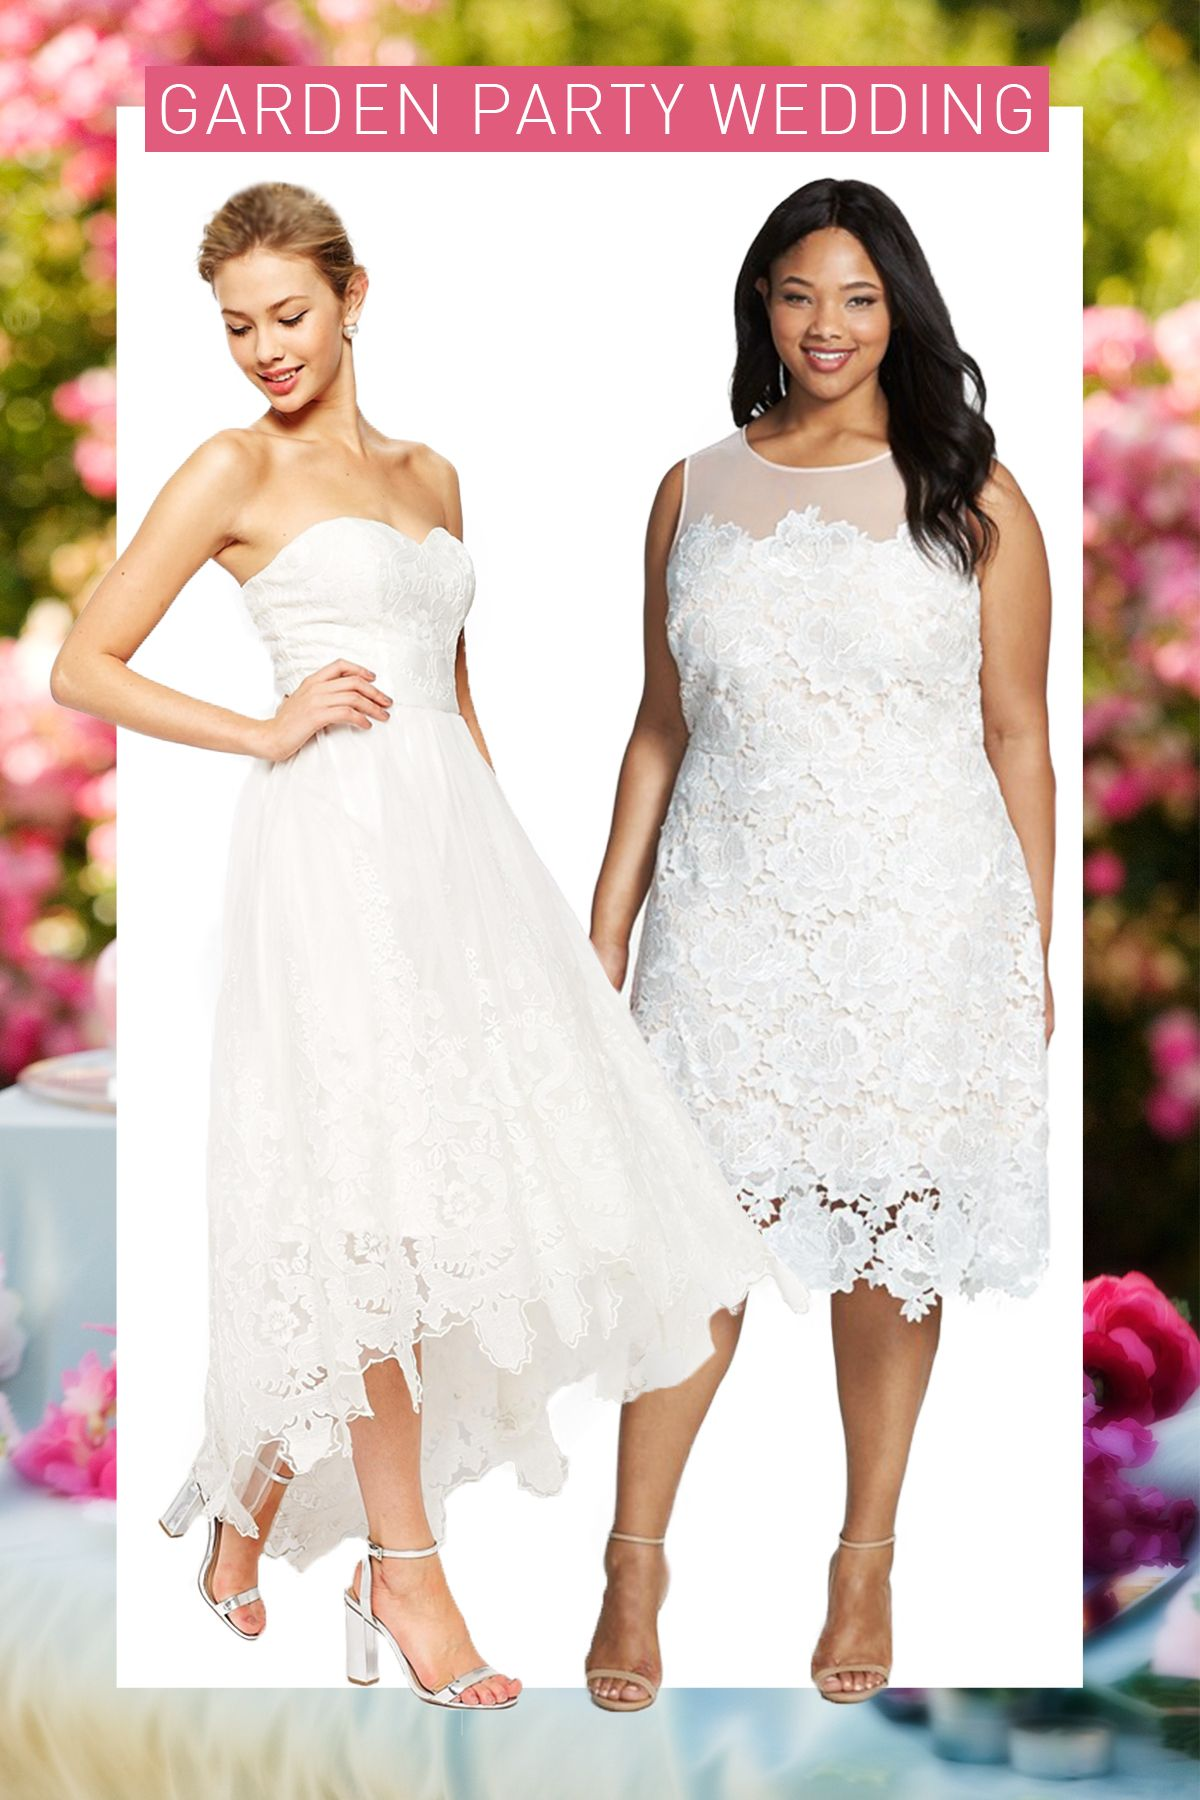 Embroidered Bandeau Dress, CHI CHI LONDON (Available at Asos), $135; Plus-Size Lace Sheath Dress, JULIA JORDAN (Available at Nordstrom), $198   - Cosmopolitan.com